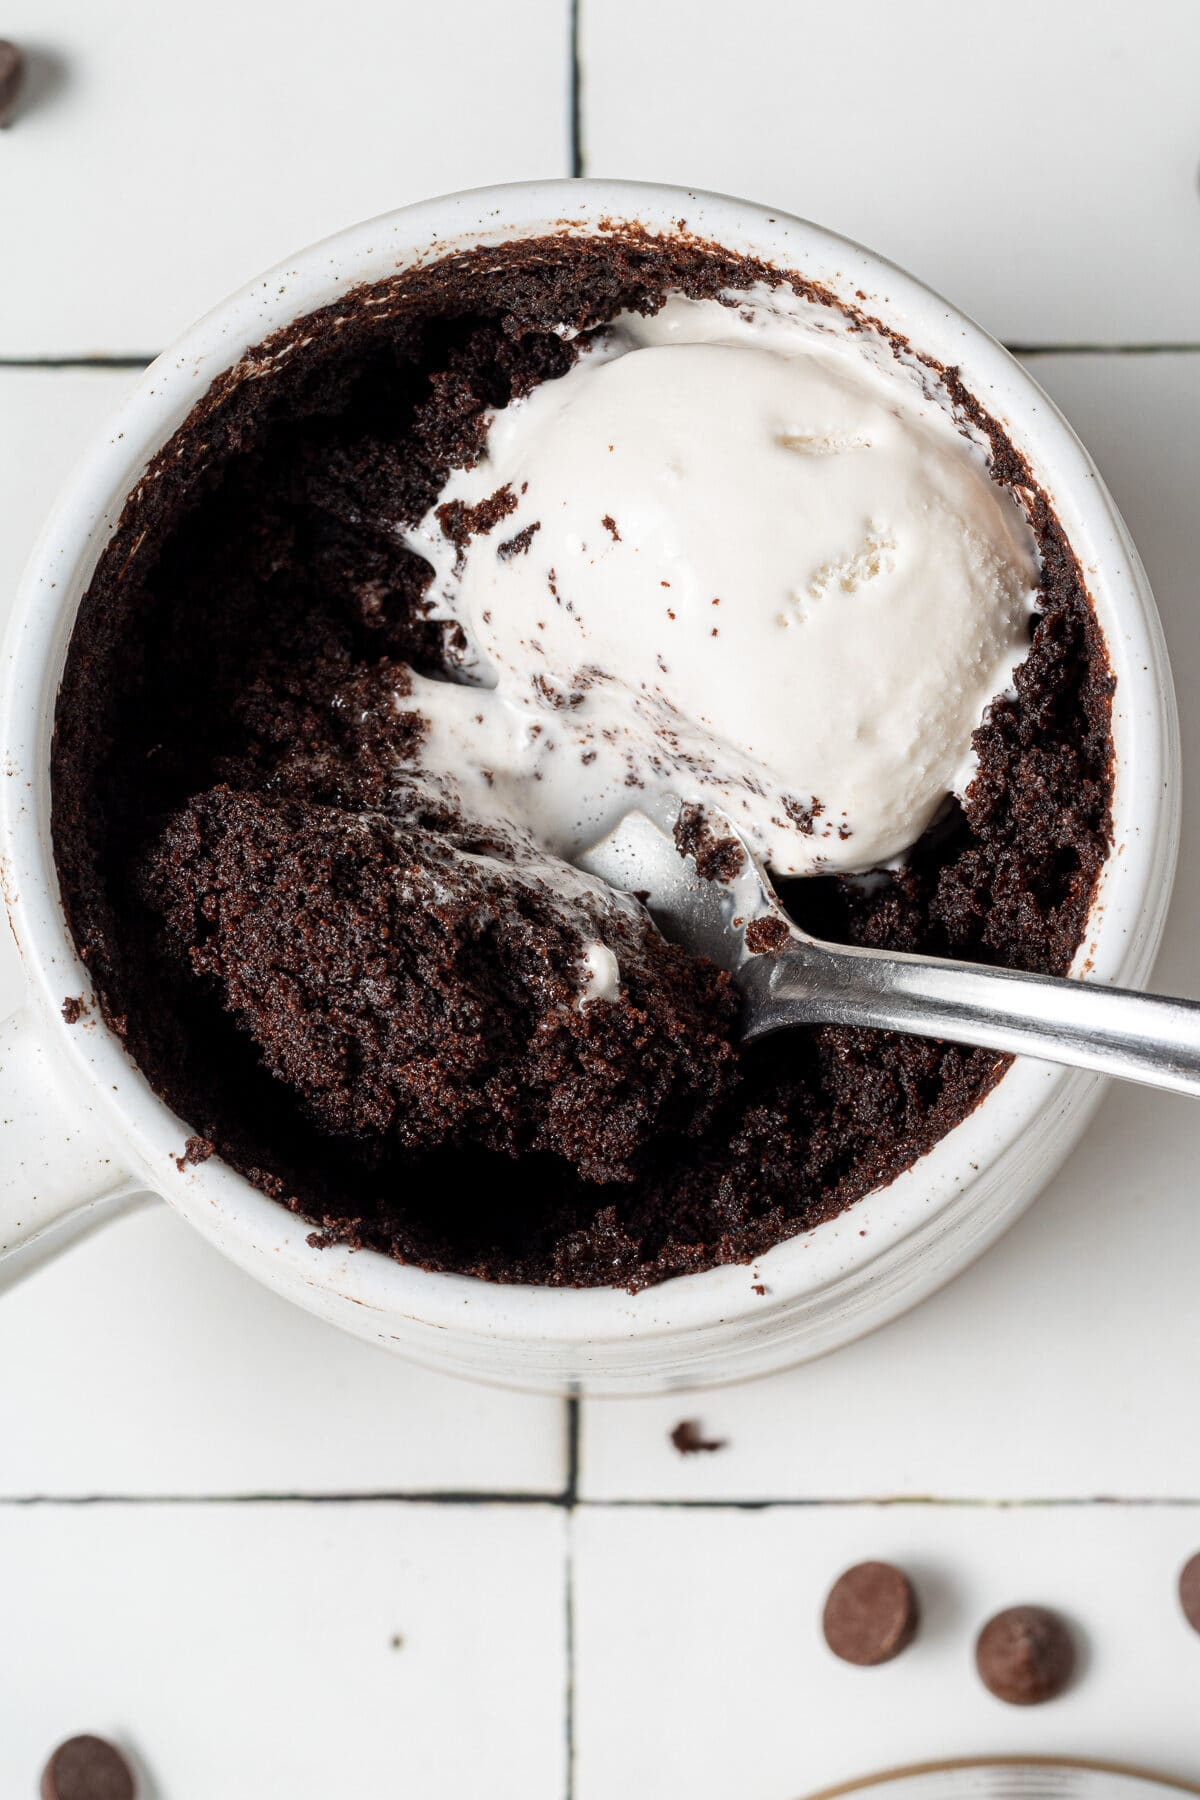 a vegan chocolate cake in a mug with a spoon and whipped cream on top with chocolate chips scattered around